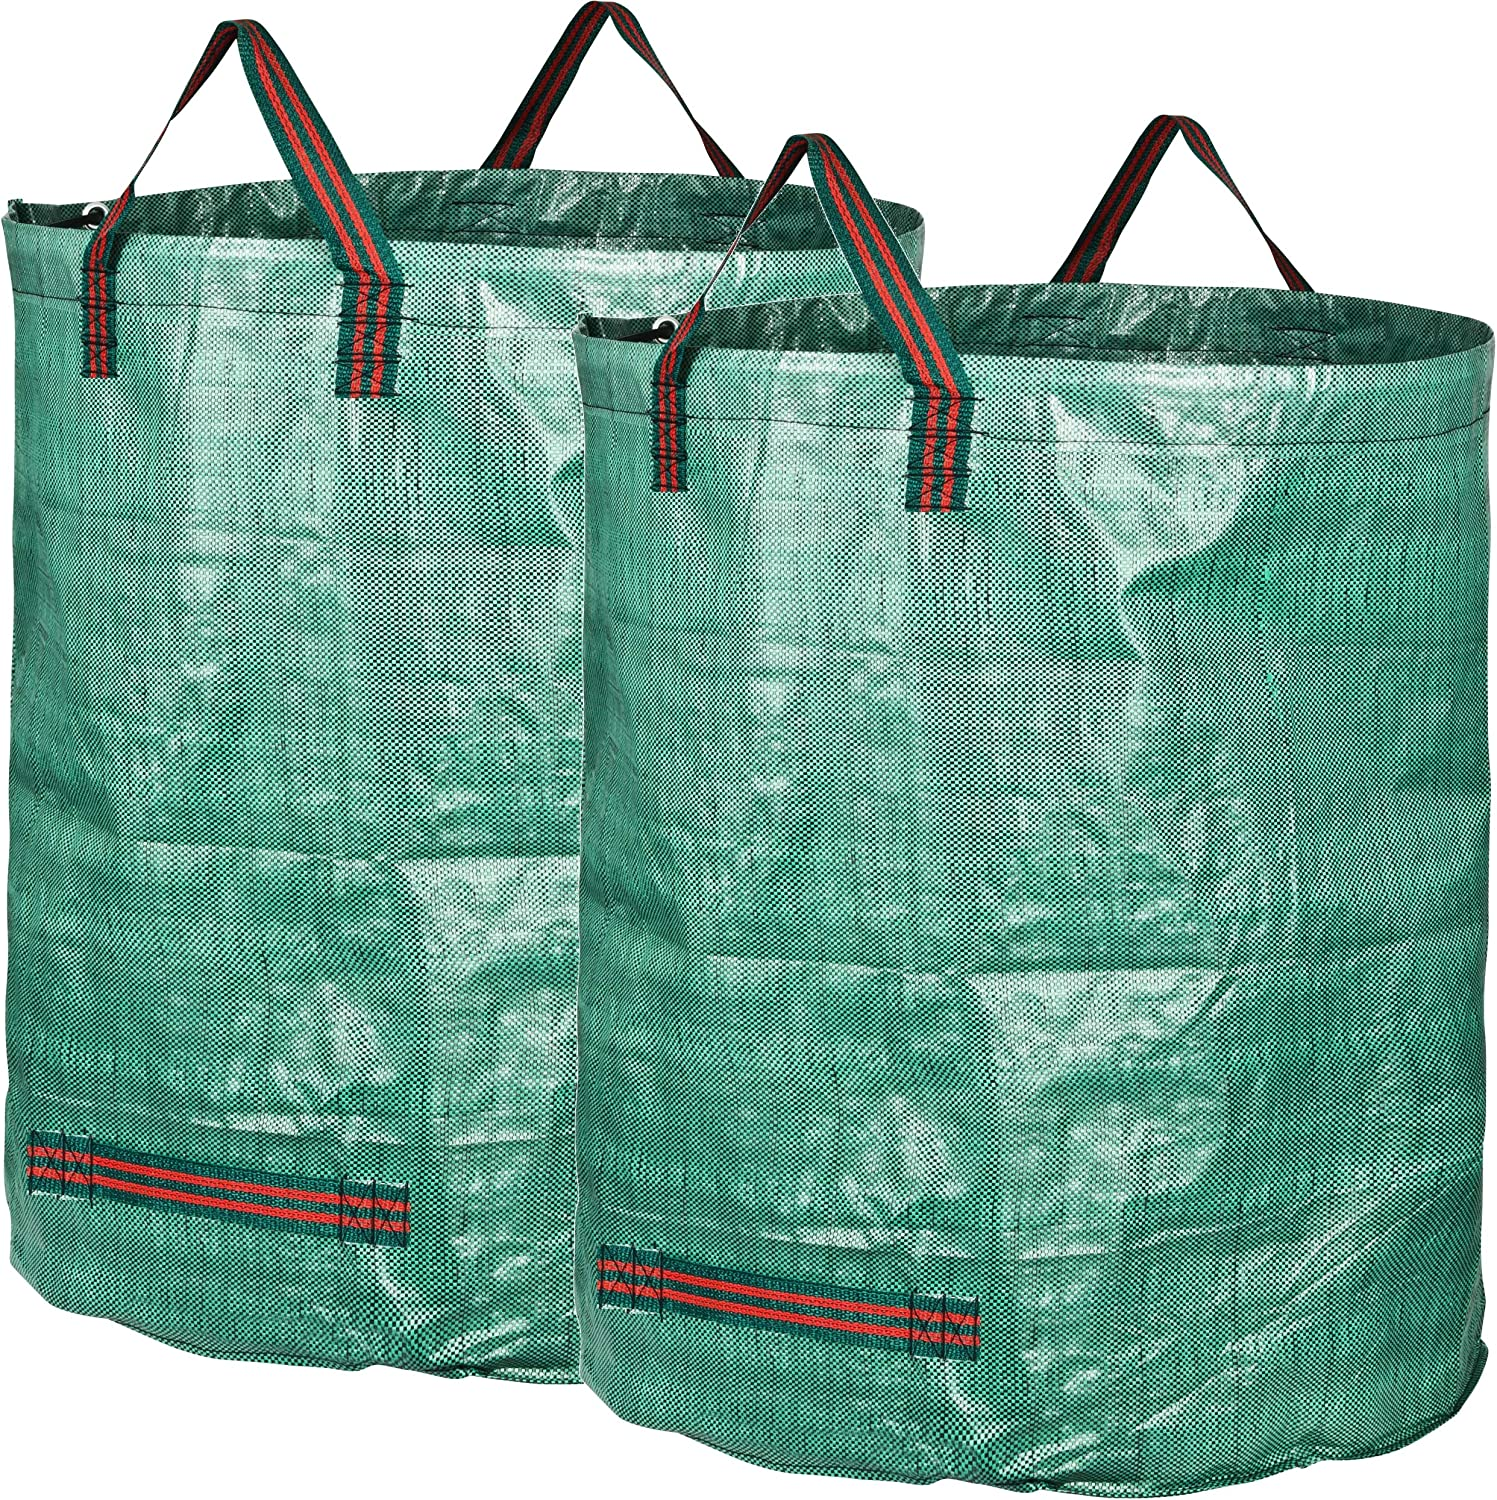 GardenMate 2-Pack 132 Gallons Professional Reusable Garden Waste Bags (H34, D34 inches) - Yard Waste Bags with Double Bottom